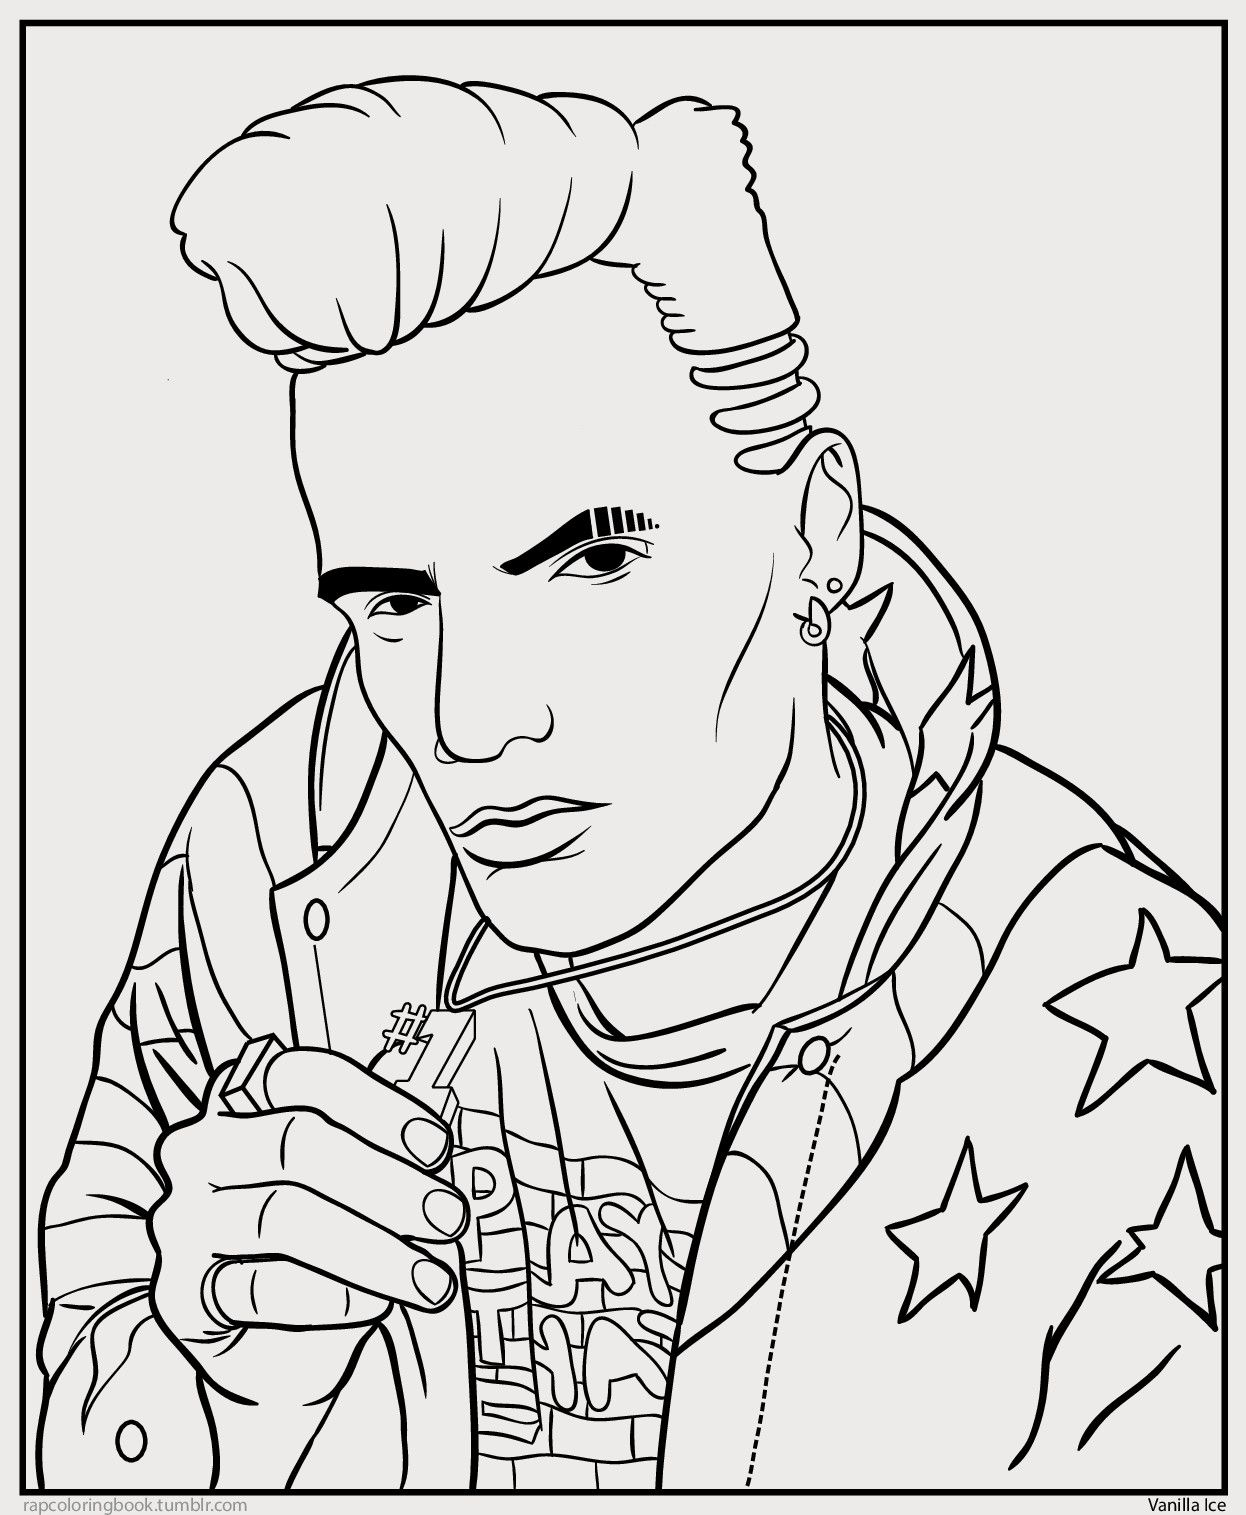 Bun B S Jumbo Coloring And Rap Activity Tumblr Click Here To Download The Vanilla Ice Coloring People Coloring Pages Coloring Pages Coloring Books